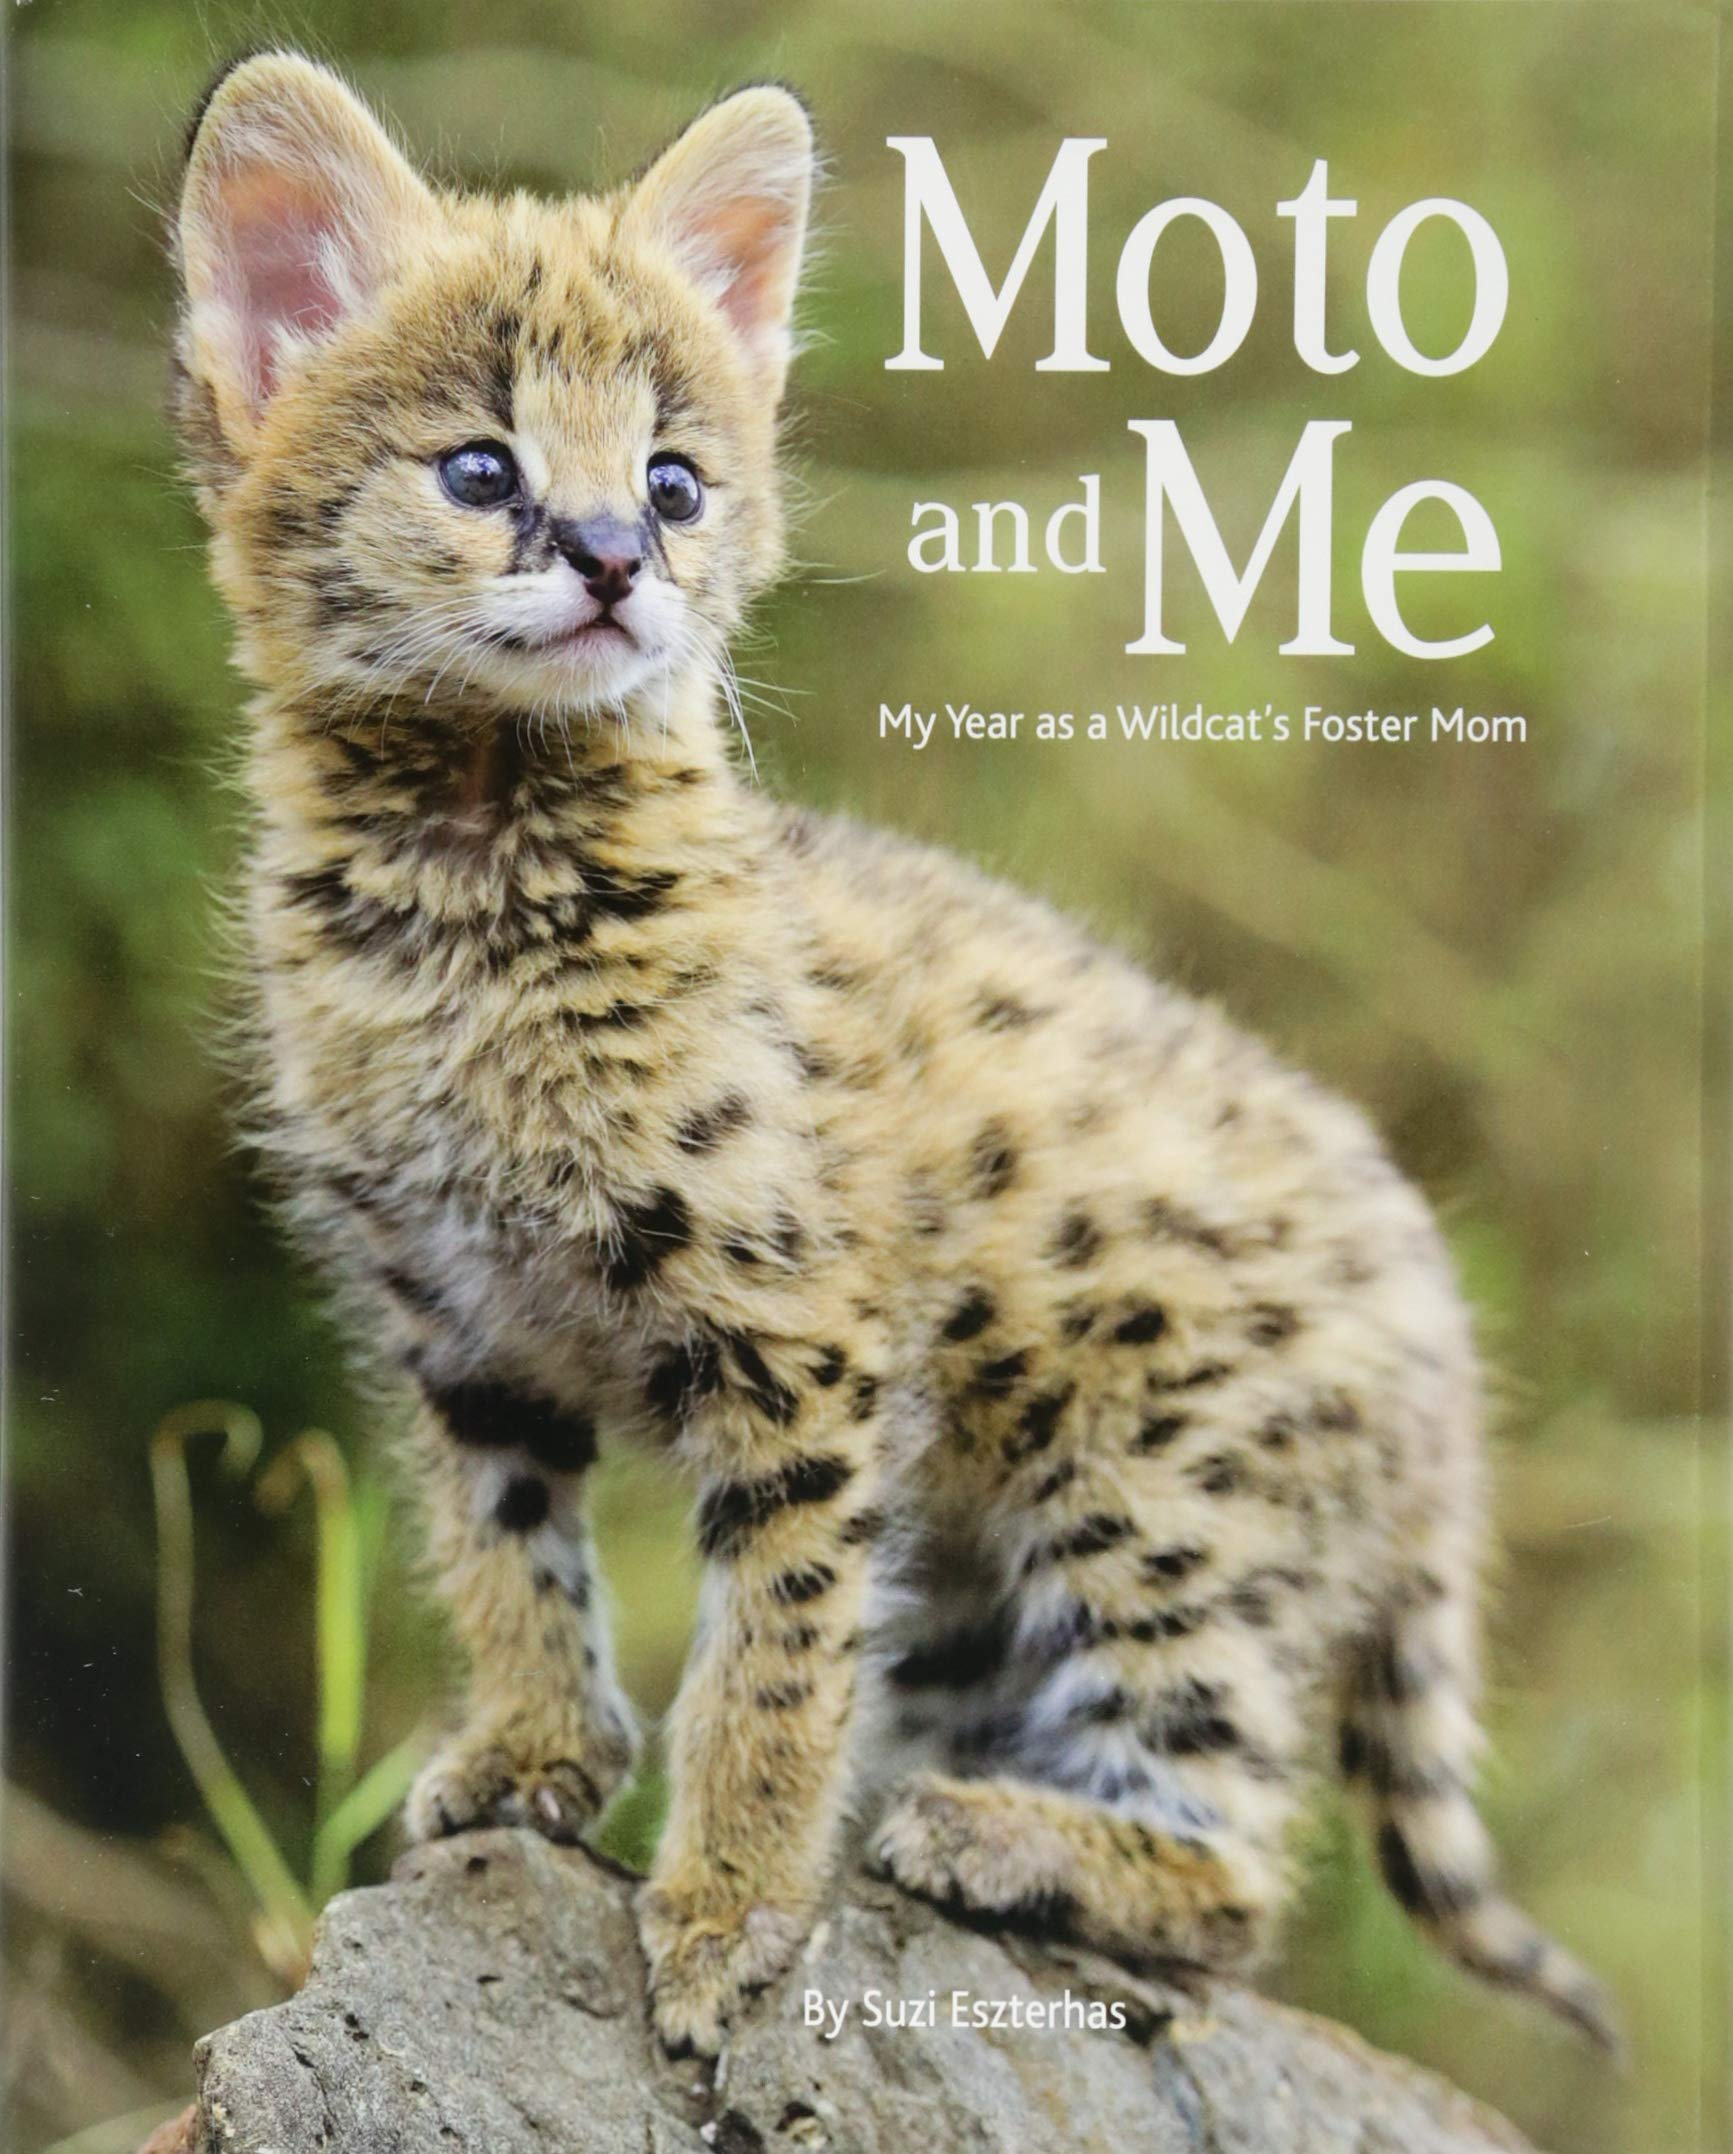 Moto and Me: My Year as a Wildcat's Foster Mom